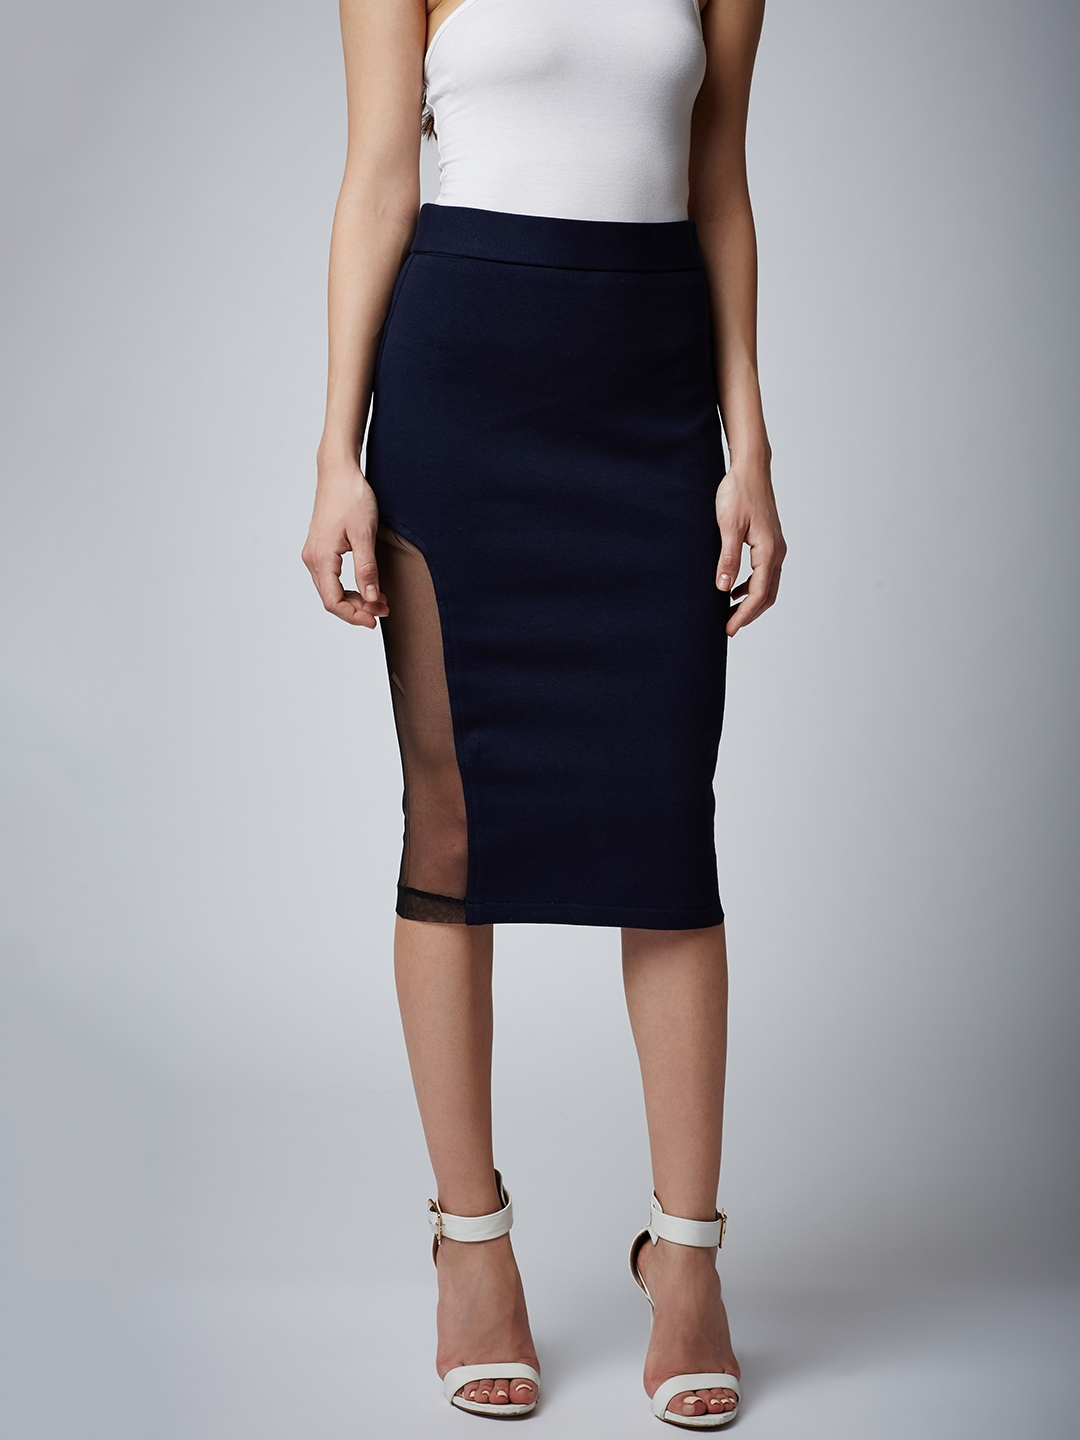 04f8f0ebe6 Buy Rider Republic Navy Blue Solid Knee Length Pencil Skirt - Skirts ...